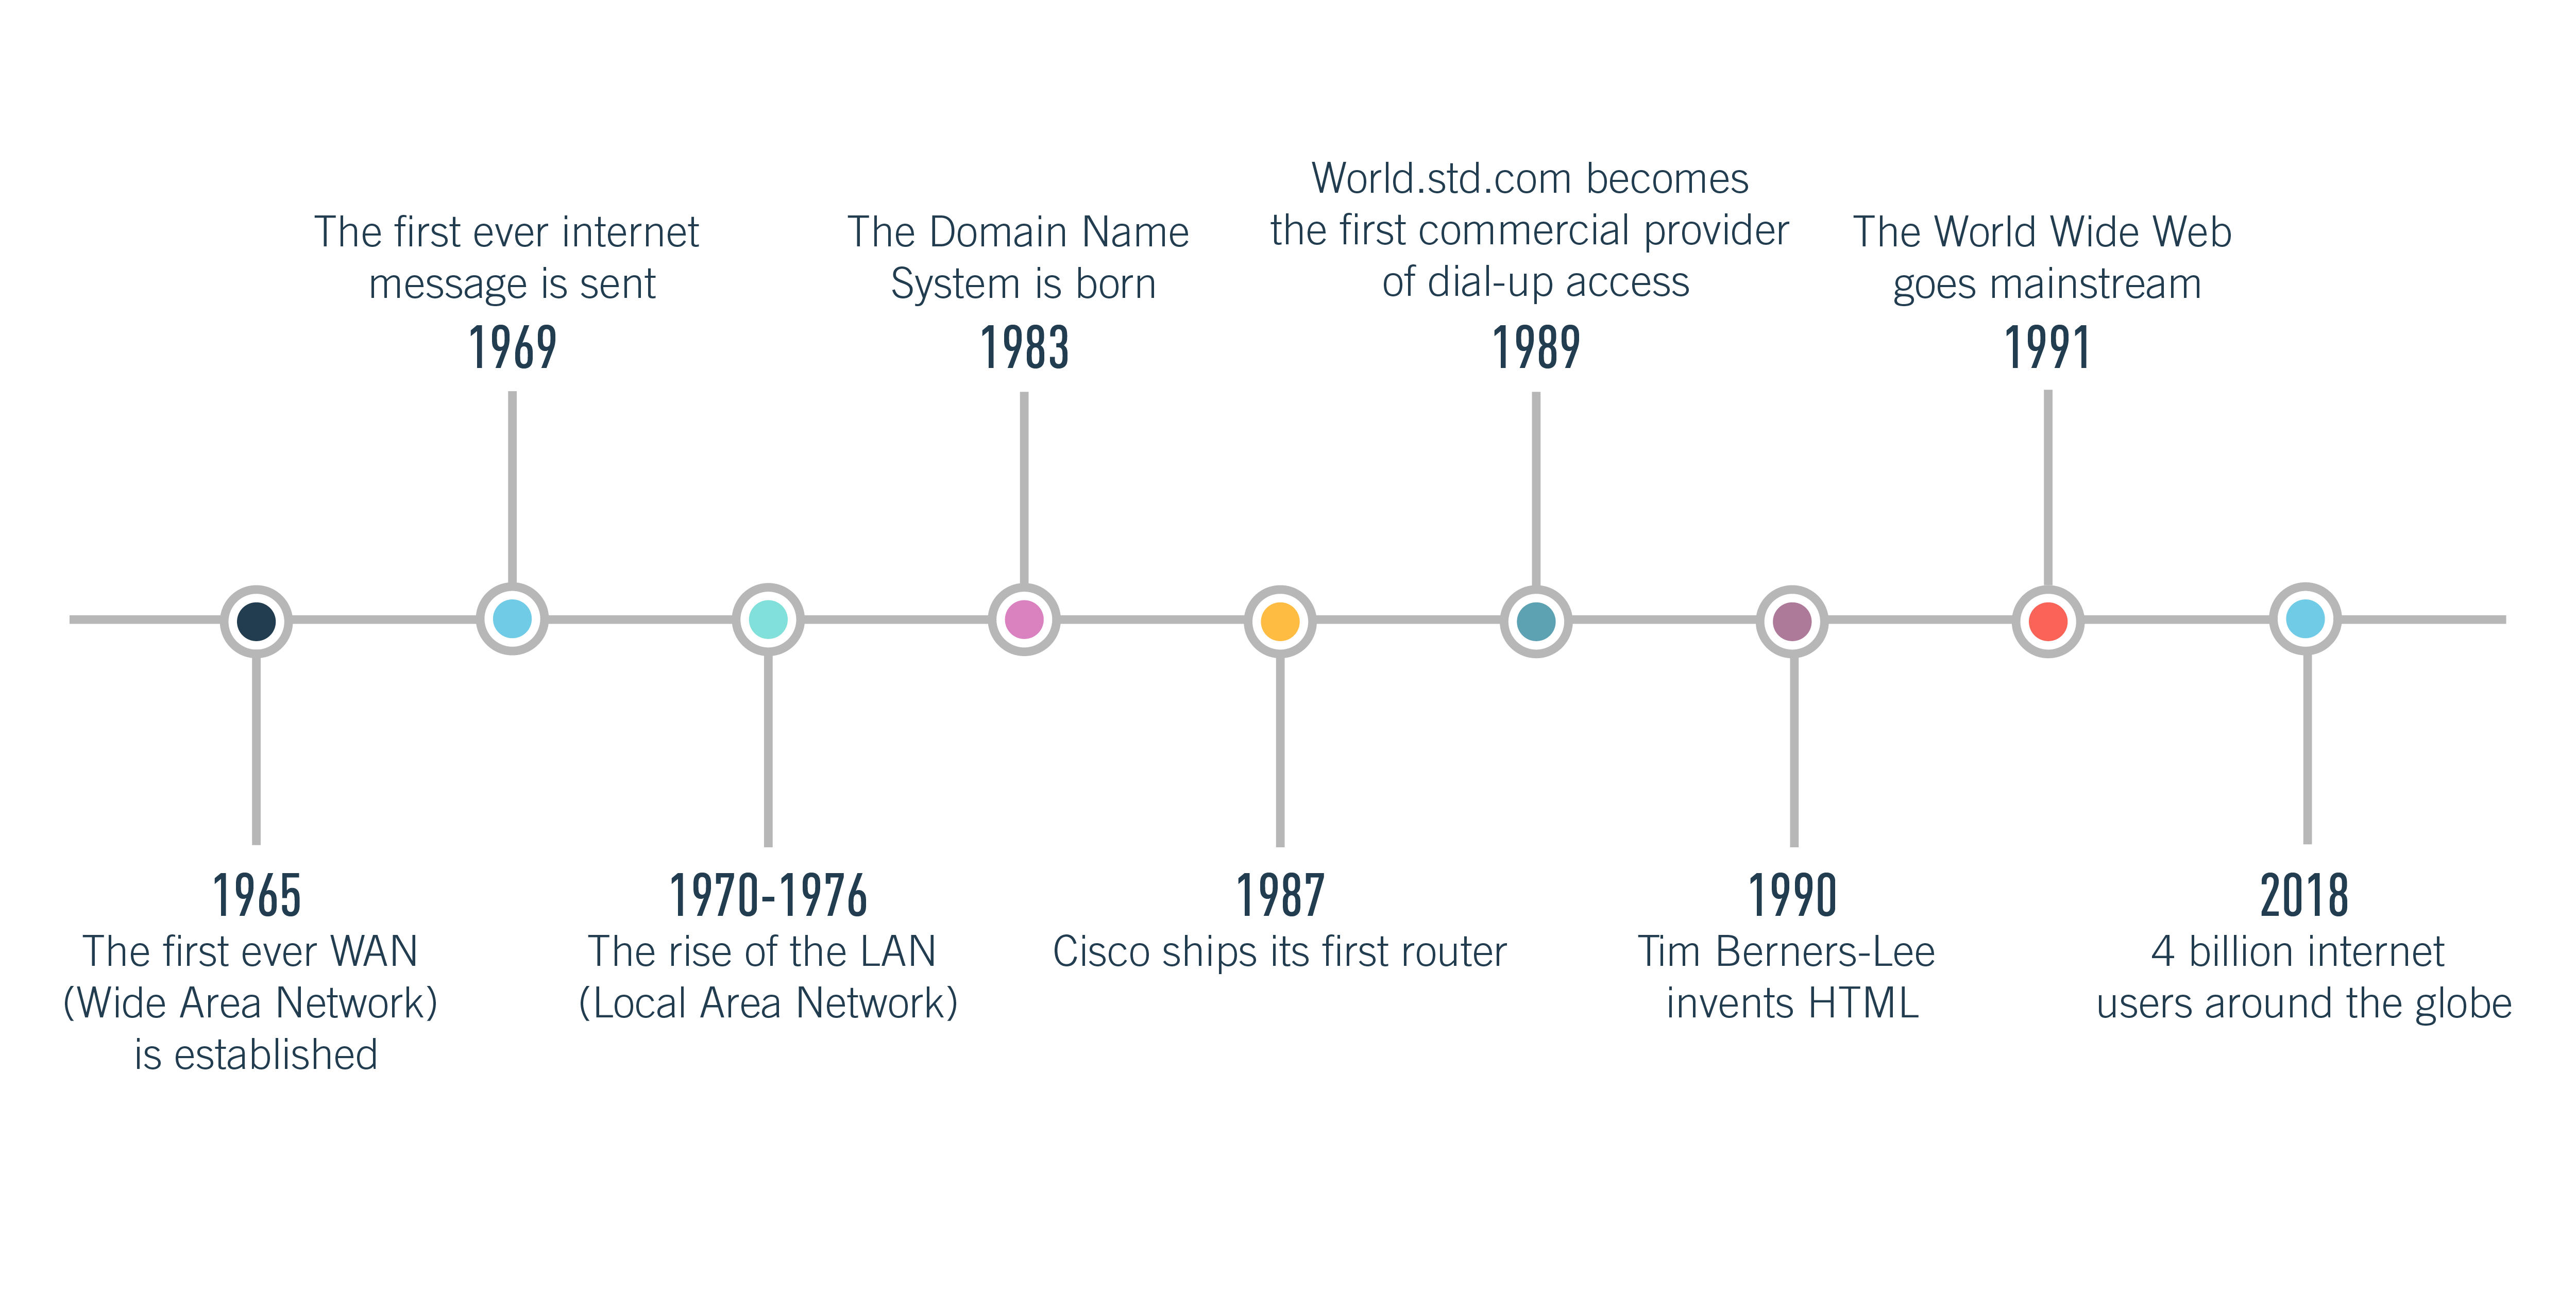 A timeline showing the history of the World Wide Web